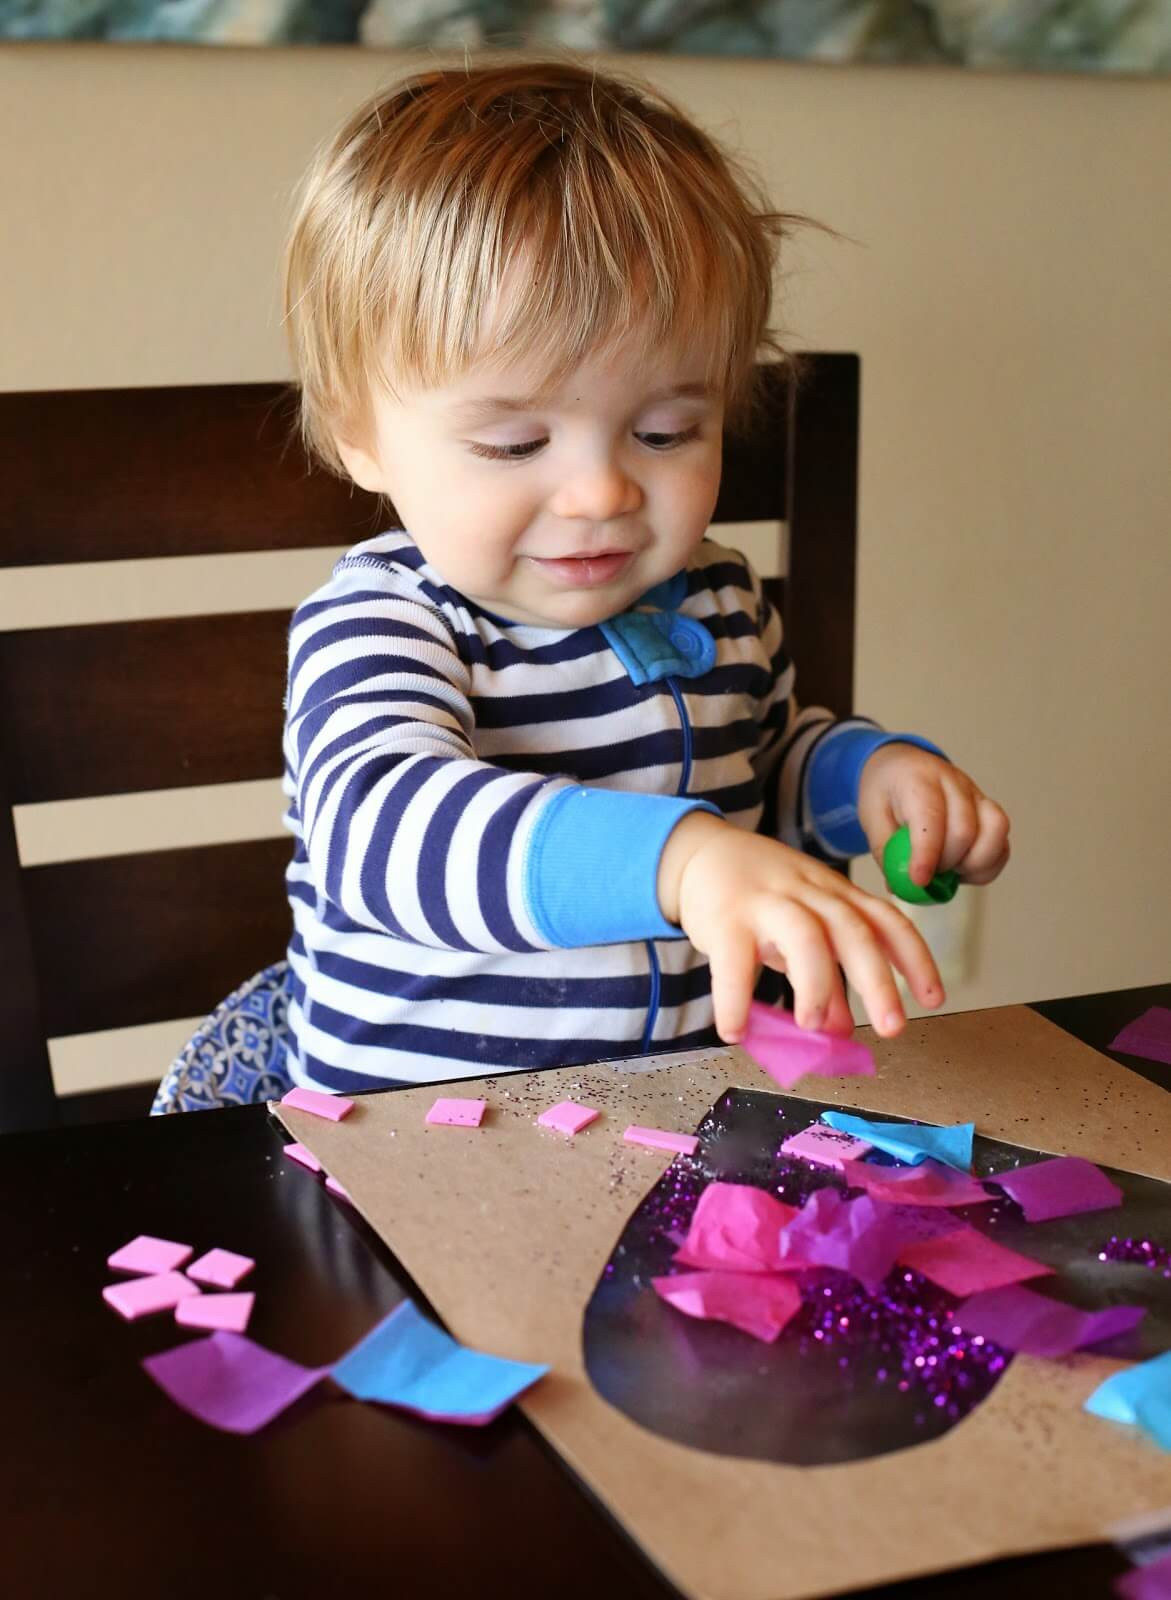 Best ideas about Kids Doing Crafts . Save or Pin Valentine's Day Crafts for Babies BabyCare Mag Now.